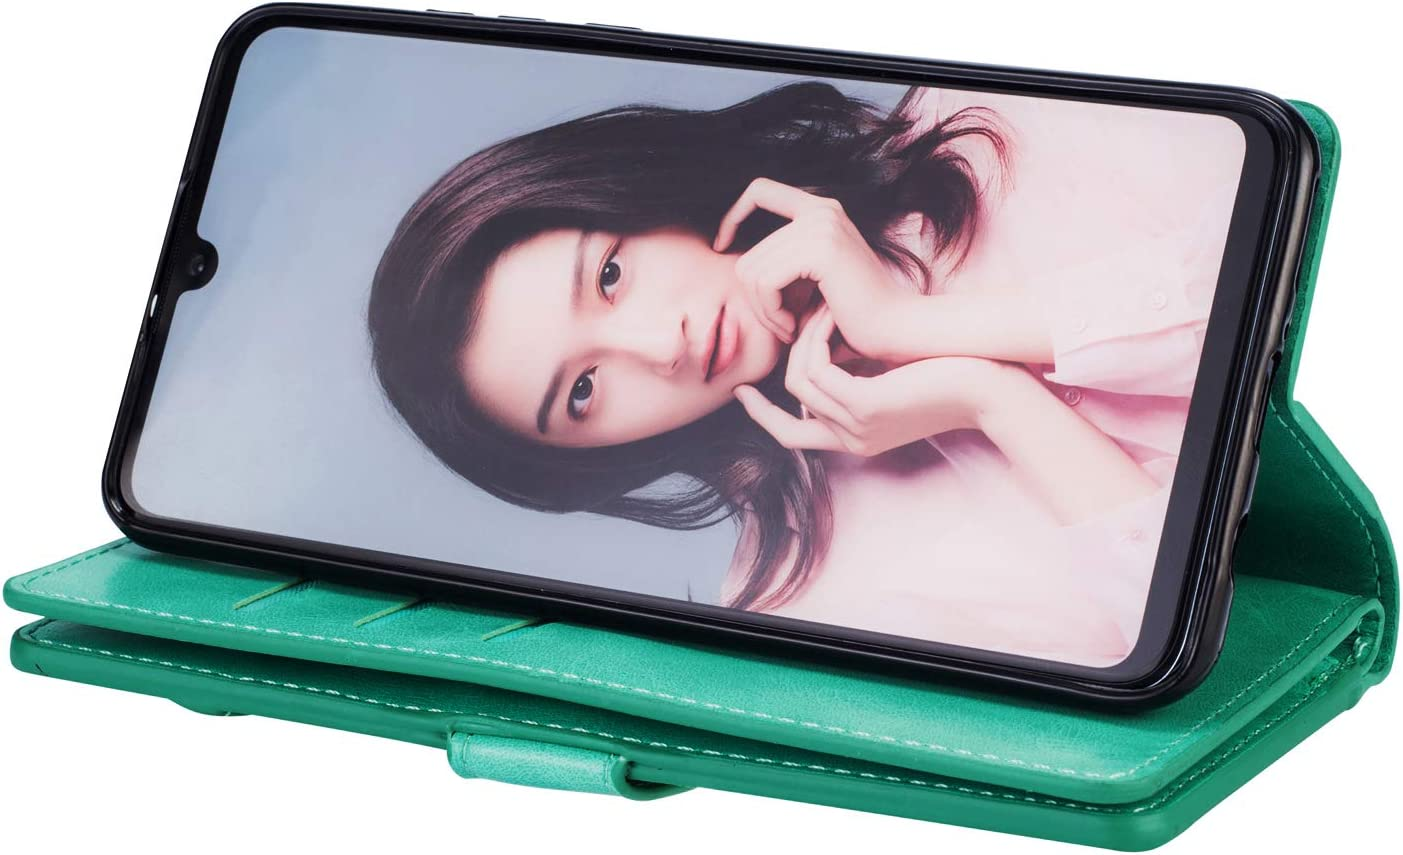 JAWSEU Case Flip Compatible with Huawei P30 Lite Premium PU Leather Wallet Folio Stand Cover Full Body Design Inner Soft TPU Silicone with Card Slots Magnetic Closure Protective Flexible Cover,Black